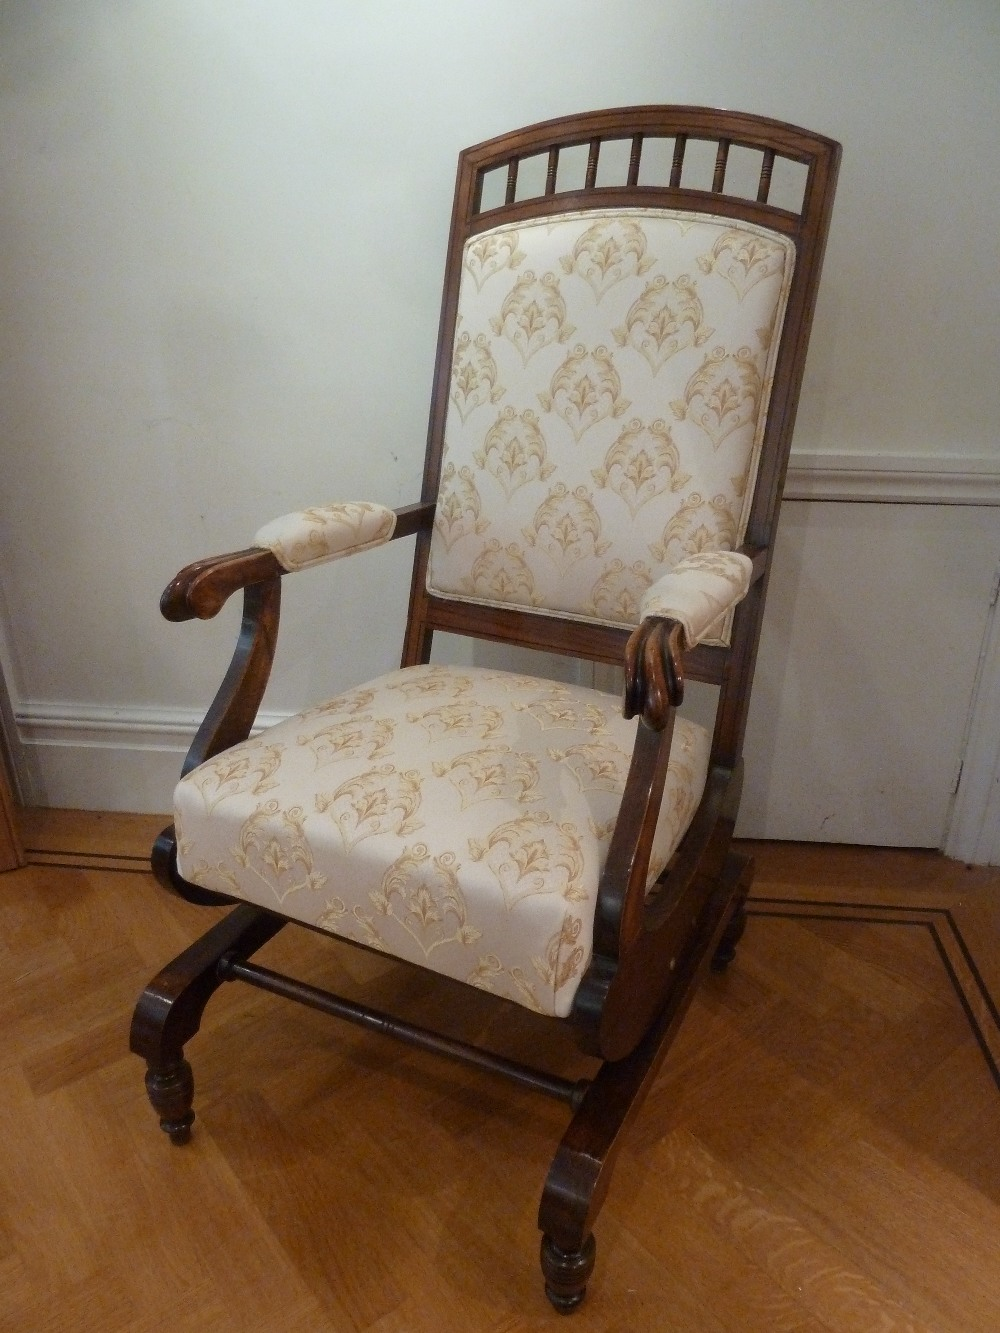 Lot 45 - An Edwardian mahogany upholstered rocking chair on four turned supports